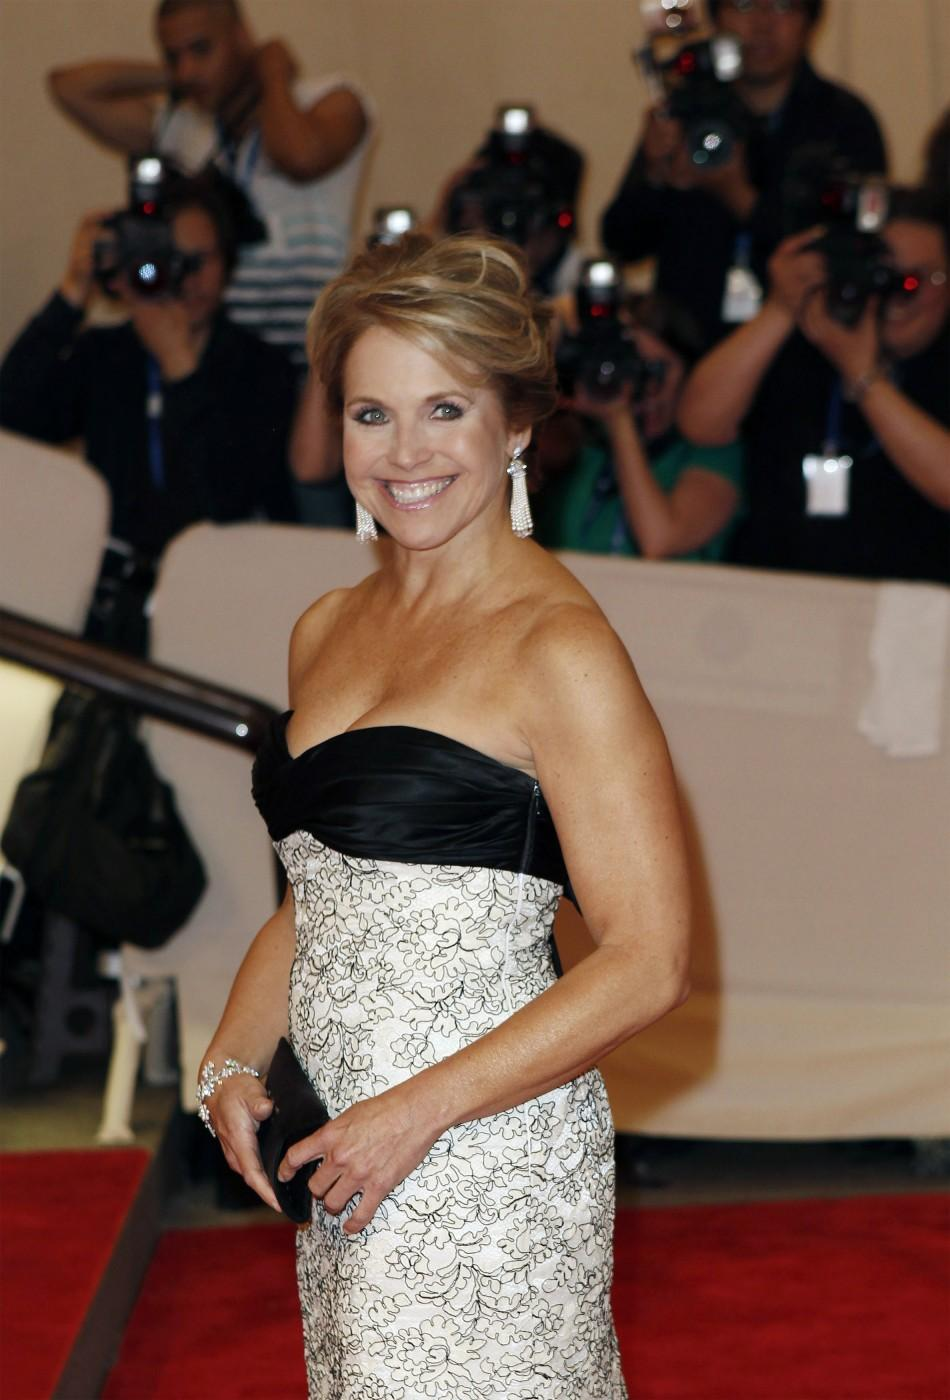 Katie Couric Gets Her Own Talk Show